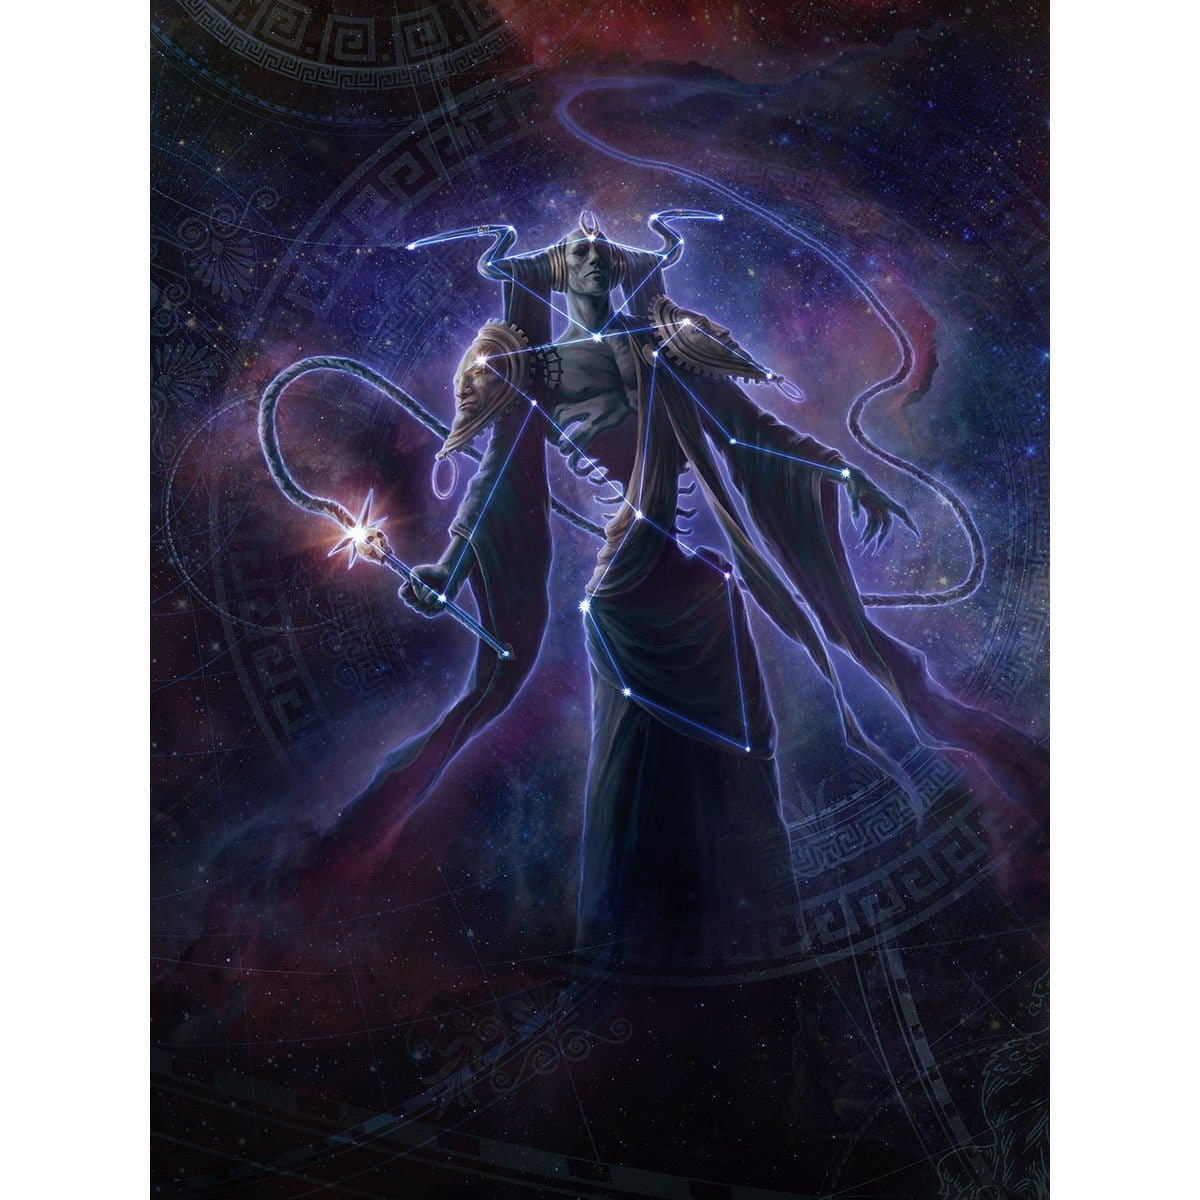 Erebos, Bleak-Hearted Print - Print - Original Magic Art - Accessories for Magic the Gathering and other card games